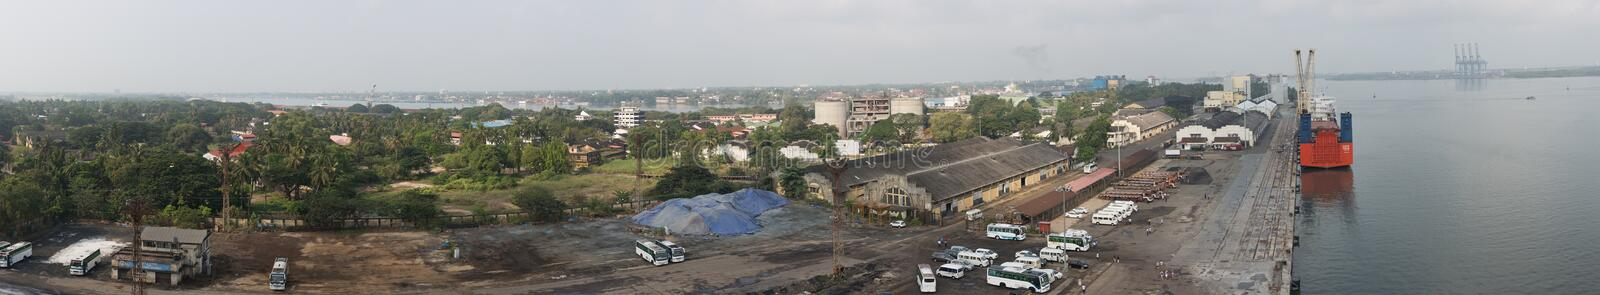 Panorama of the port of Cochin with the city stock photography